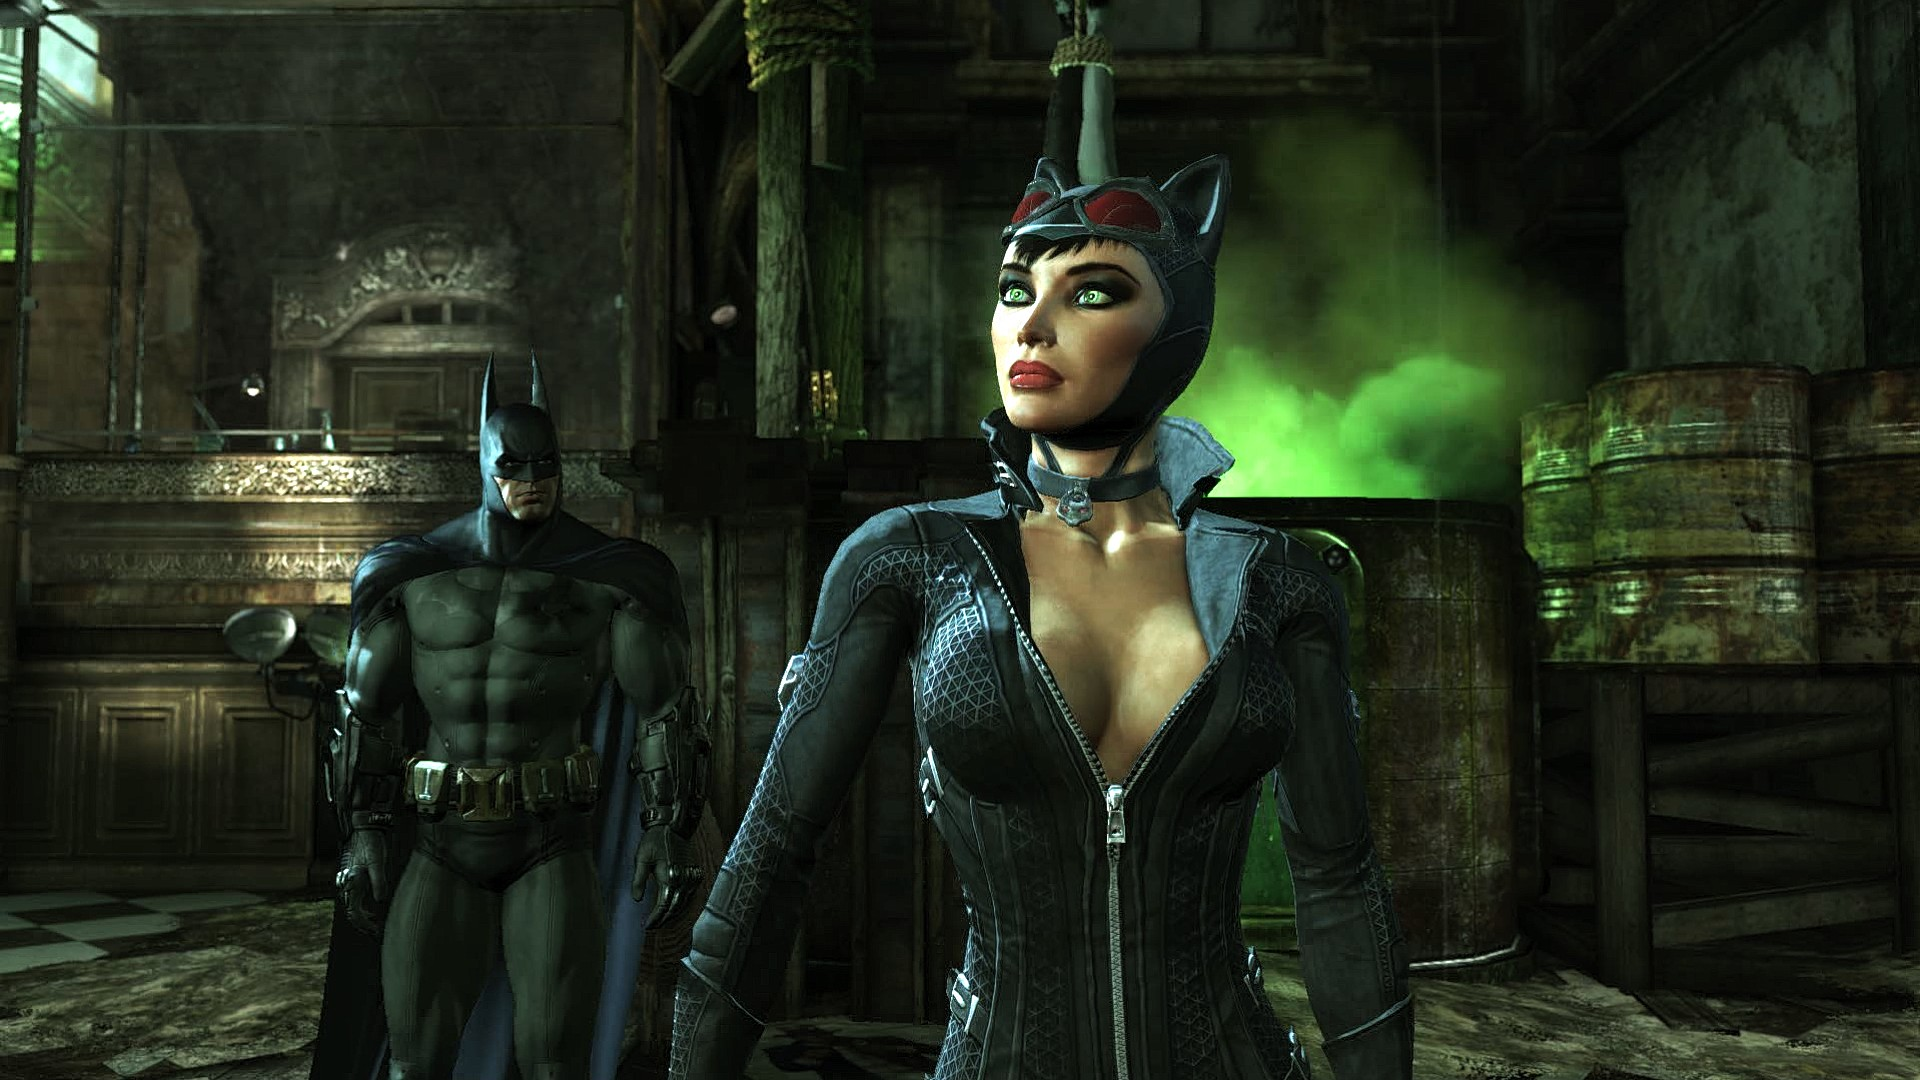 Arkham city cat woman mod porn videos